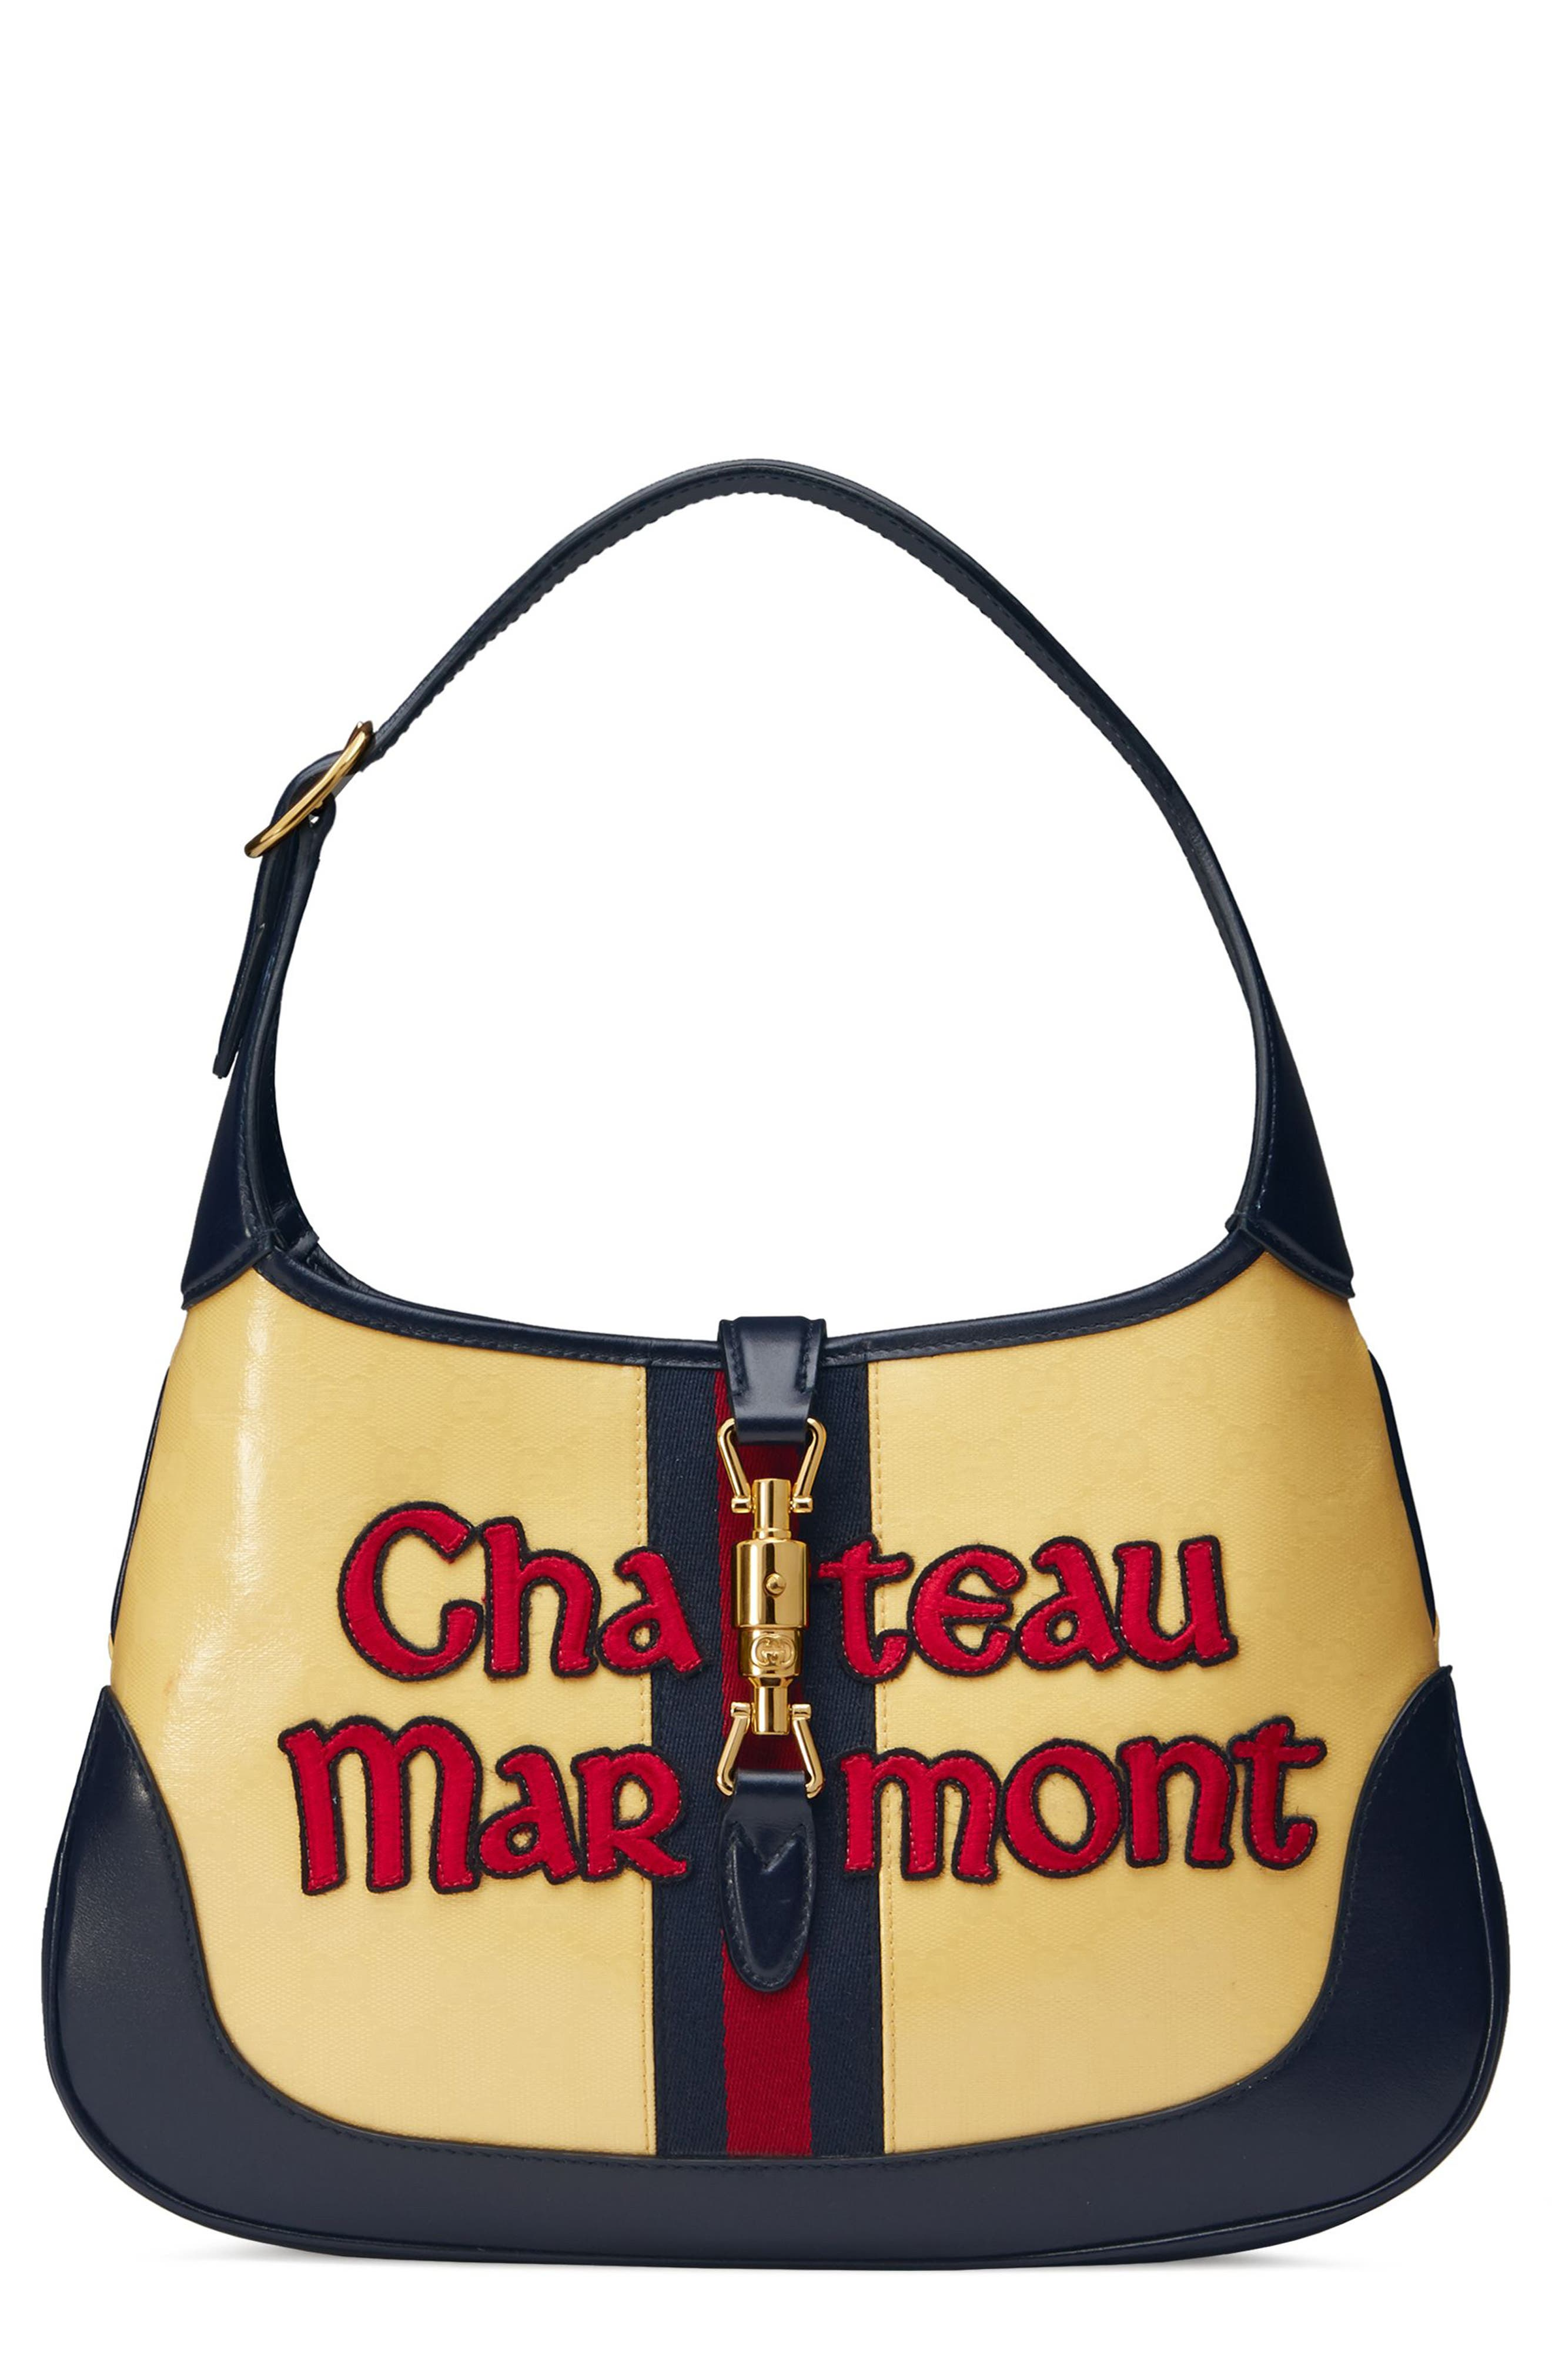 Medium Jackie Chateau Marmont GG Hobo,                             Main thumbnail 1, color,                             STRAW YELLOW/ BLU/ RED